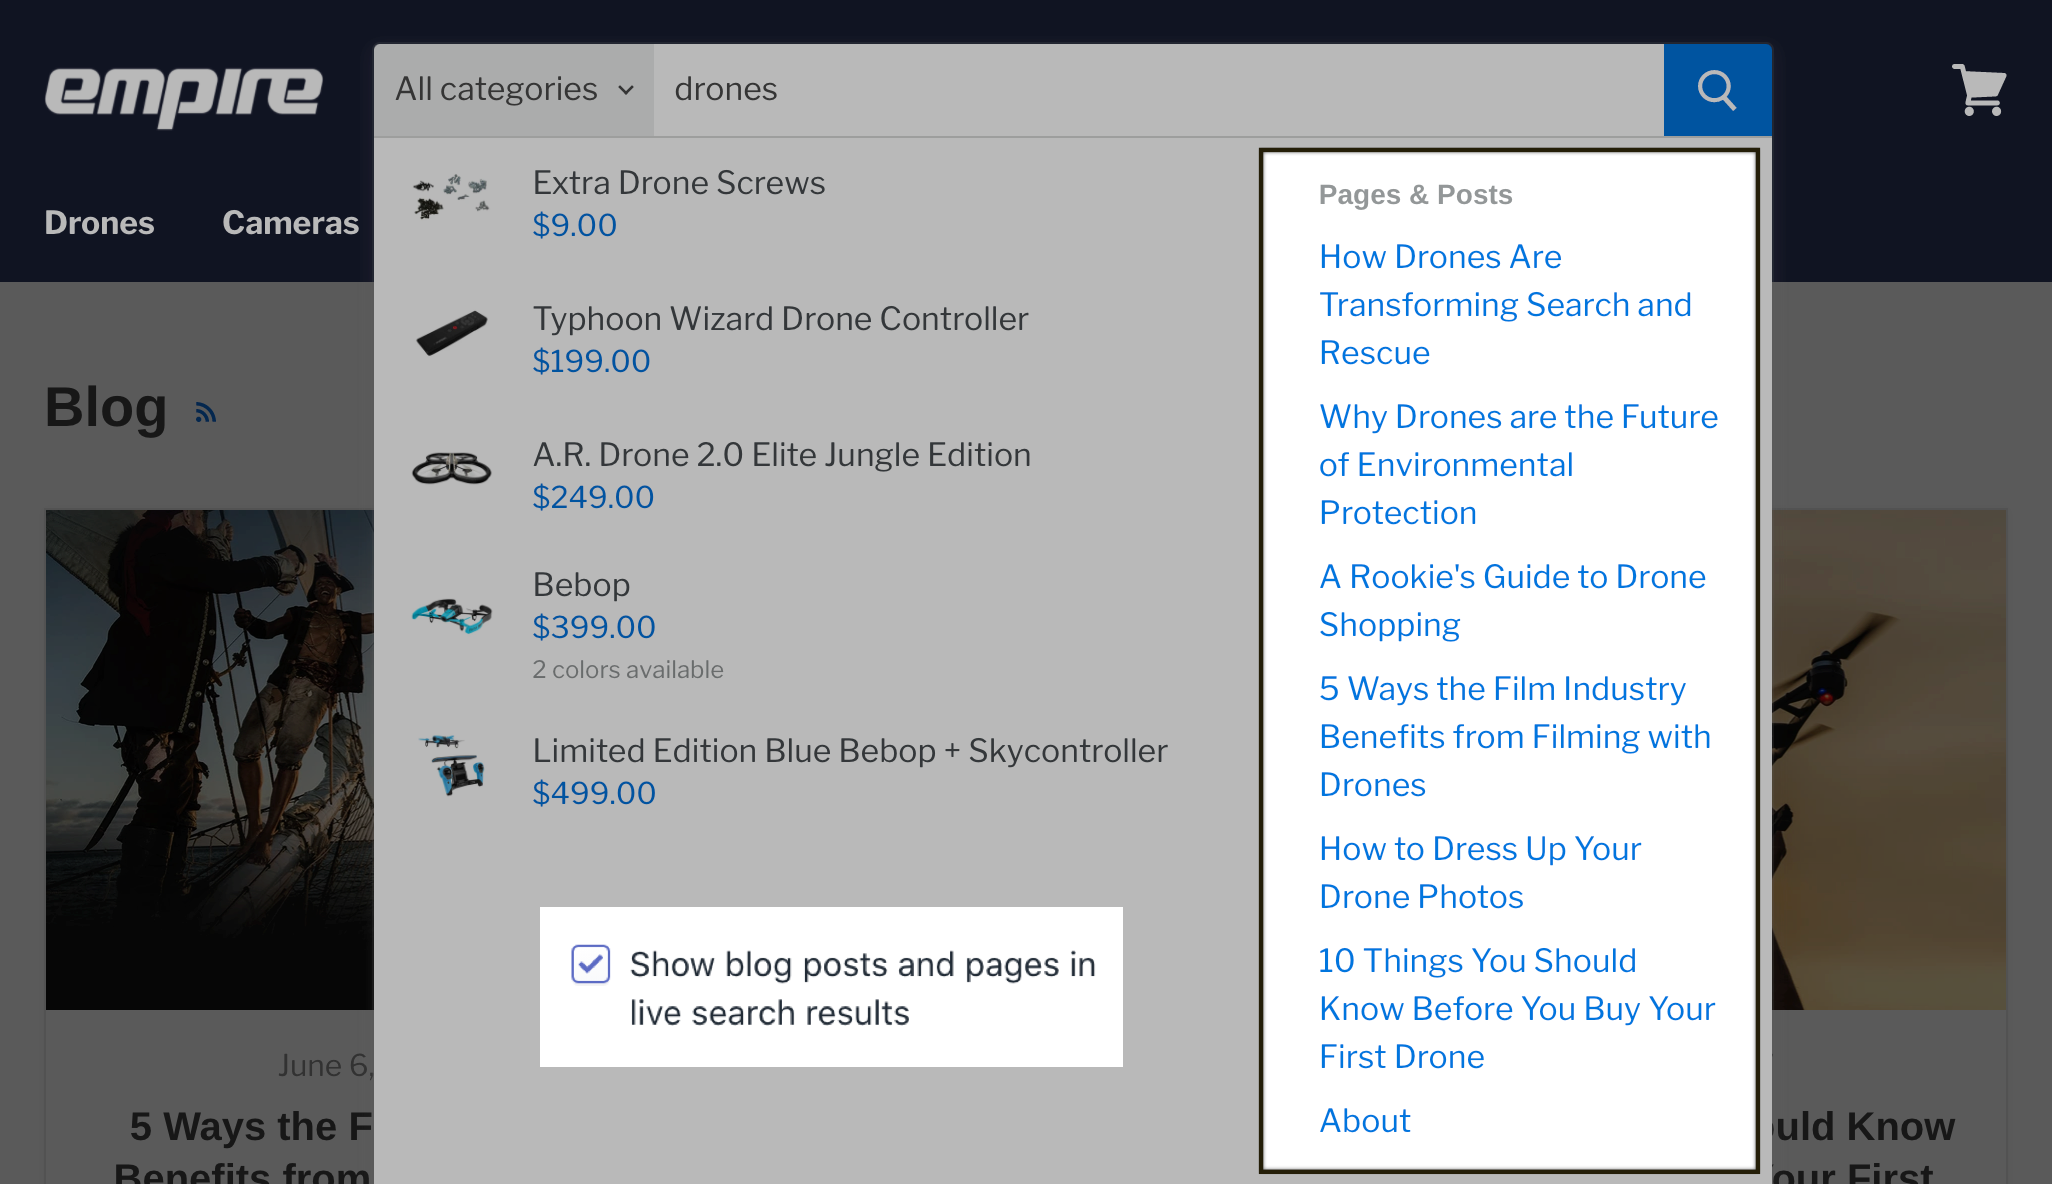 blog_posts_and_pages_enabled_for_live_search.png